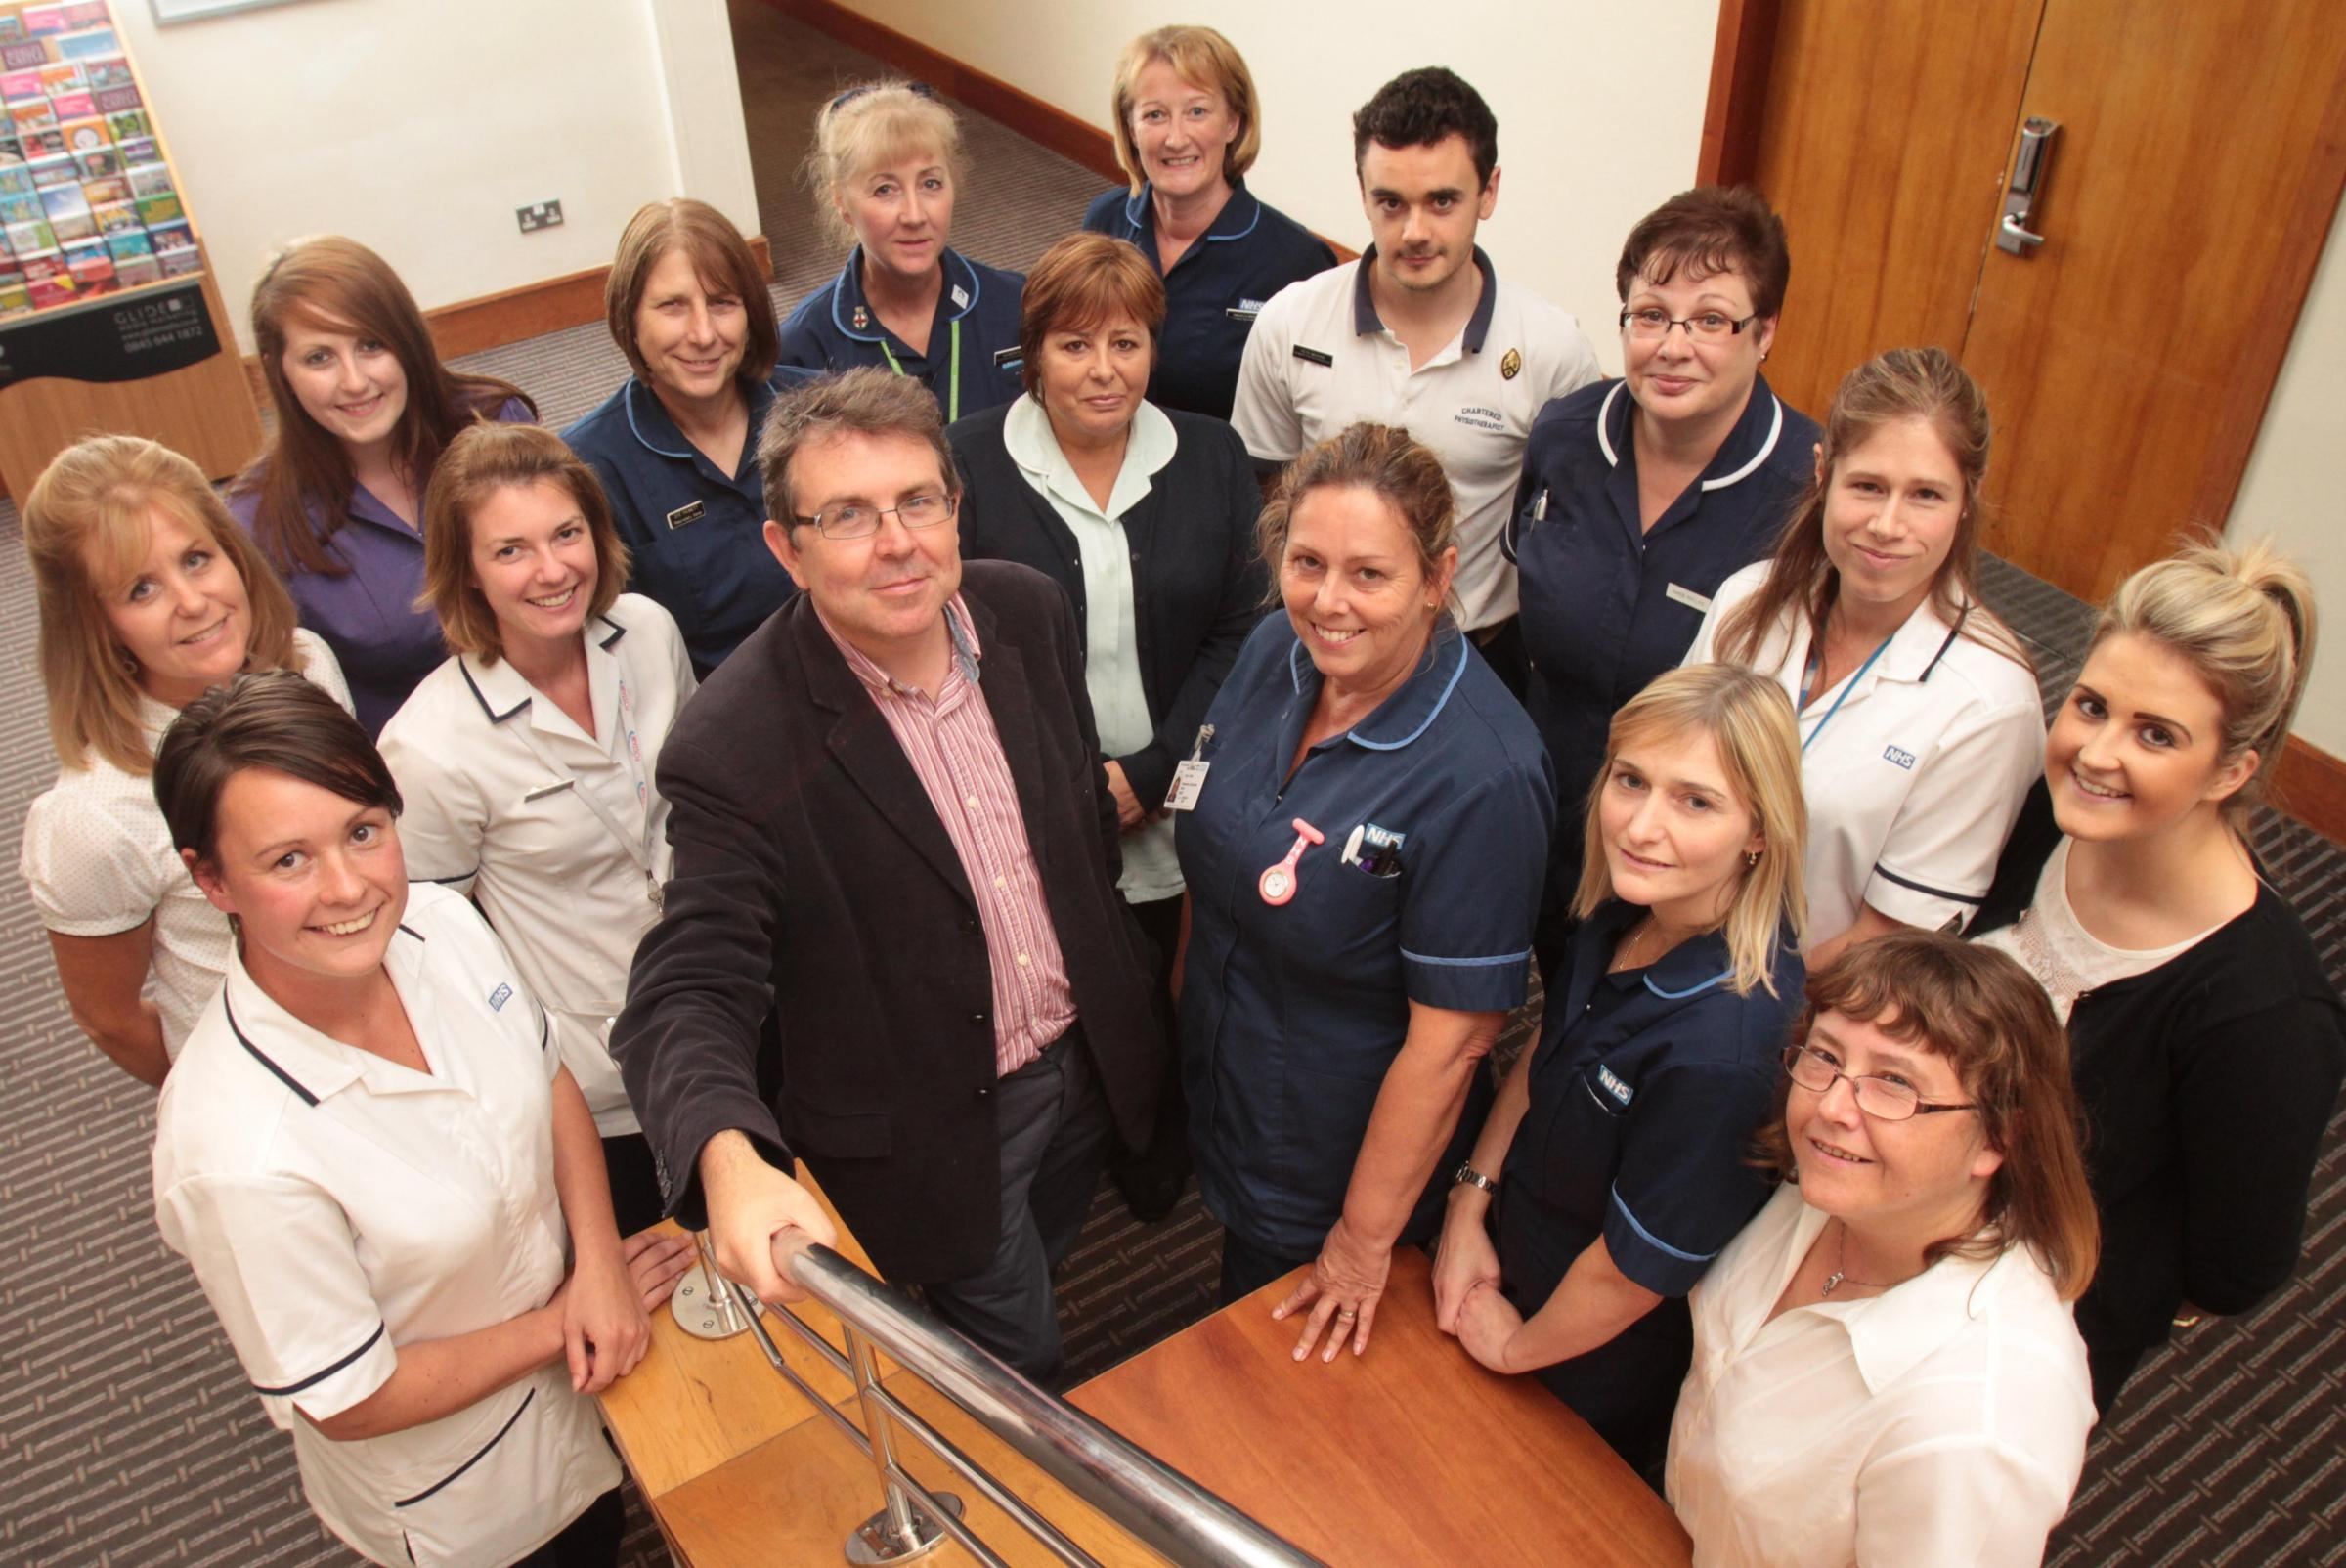 Dr Andrew White (centre) with some of the new Gloucestershire Respiratory Team. Picture by Antony Thompson - Thousand Word Media.